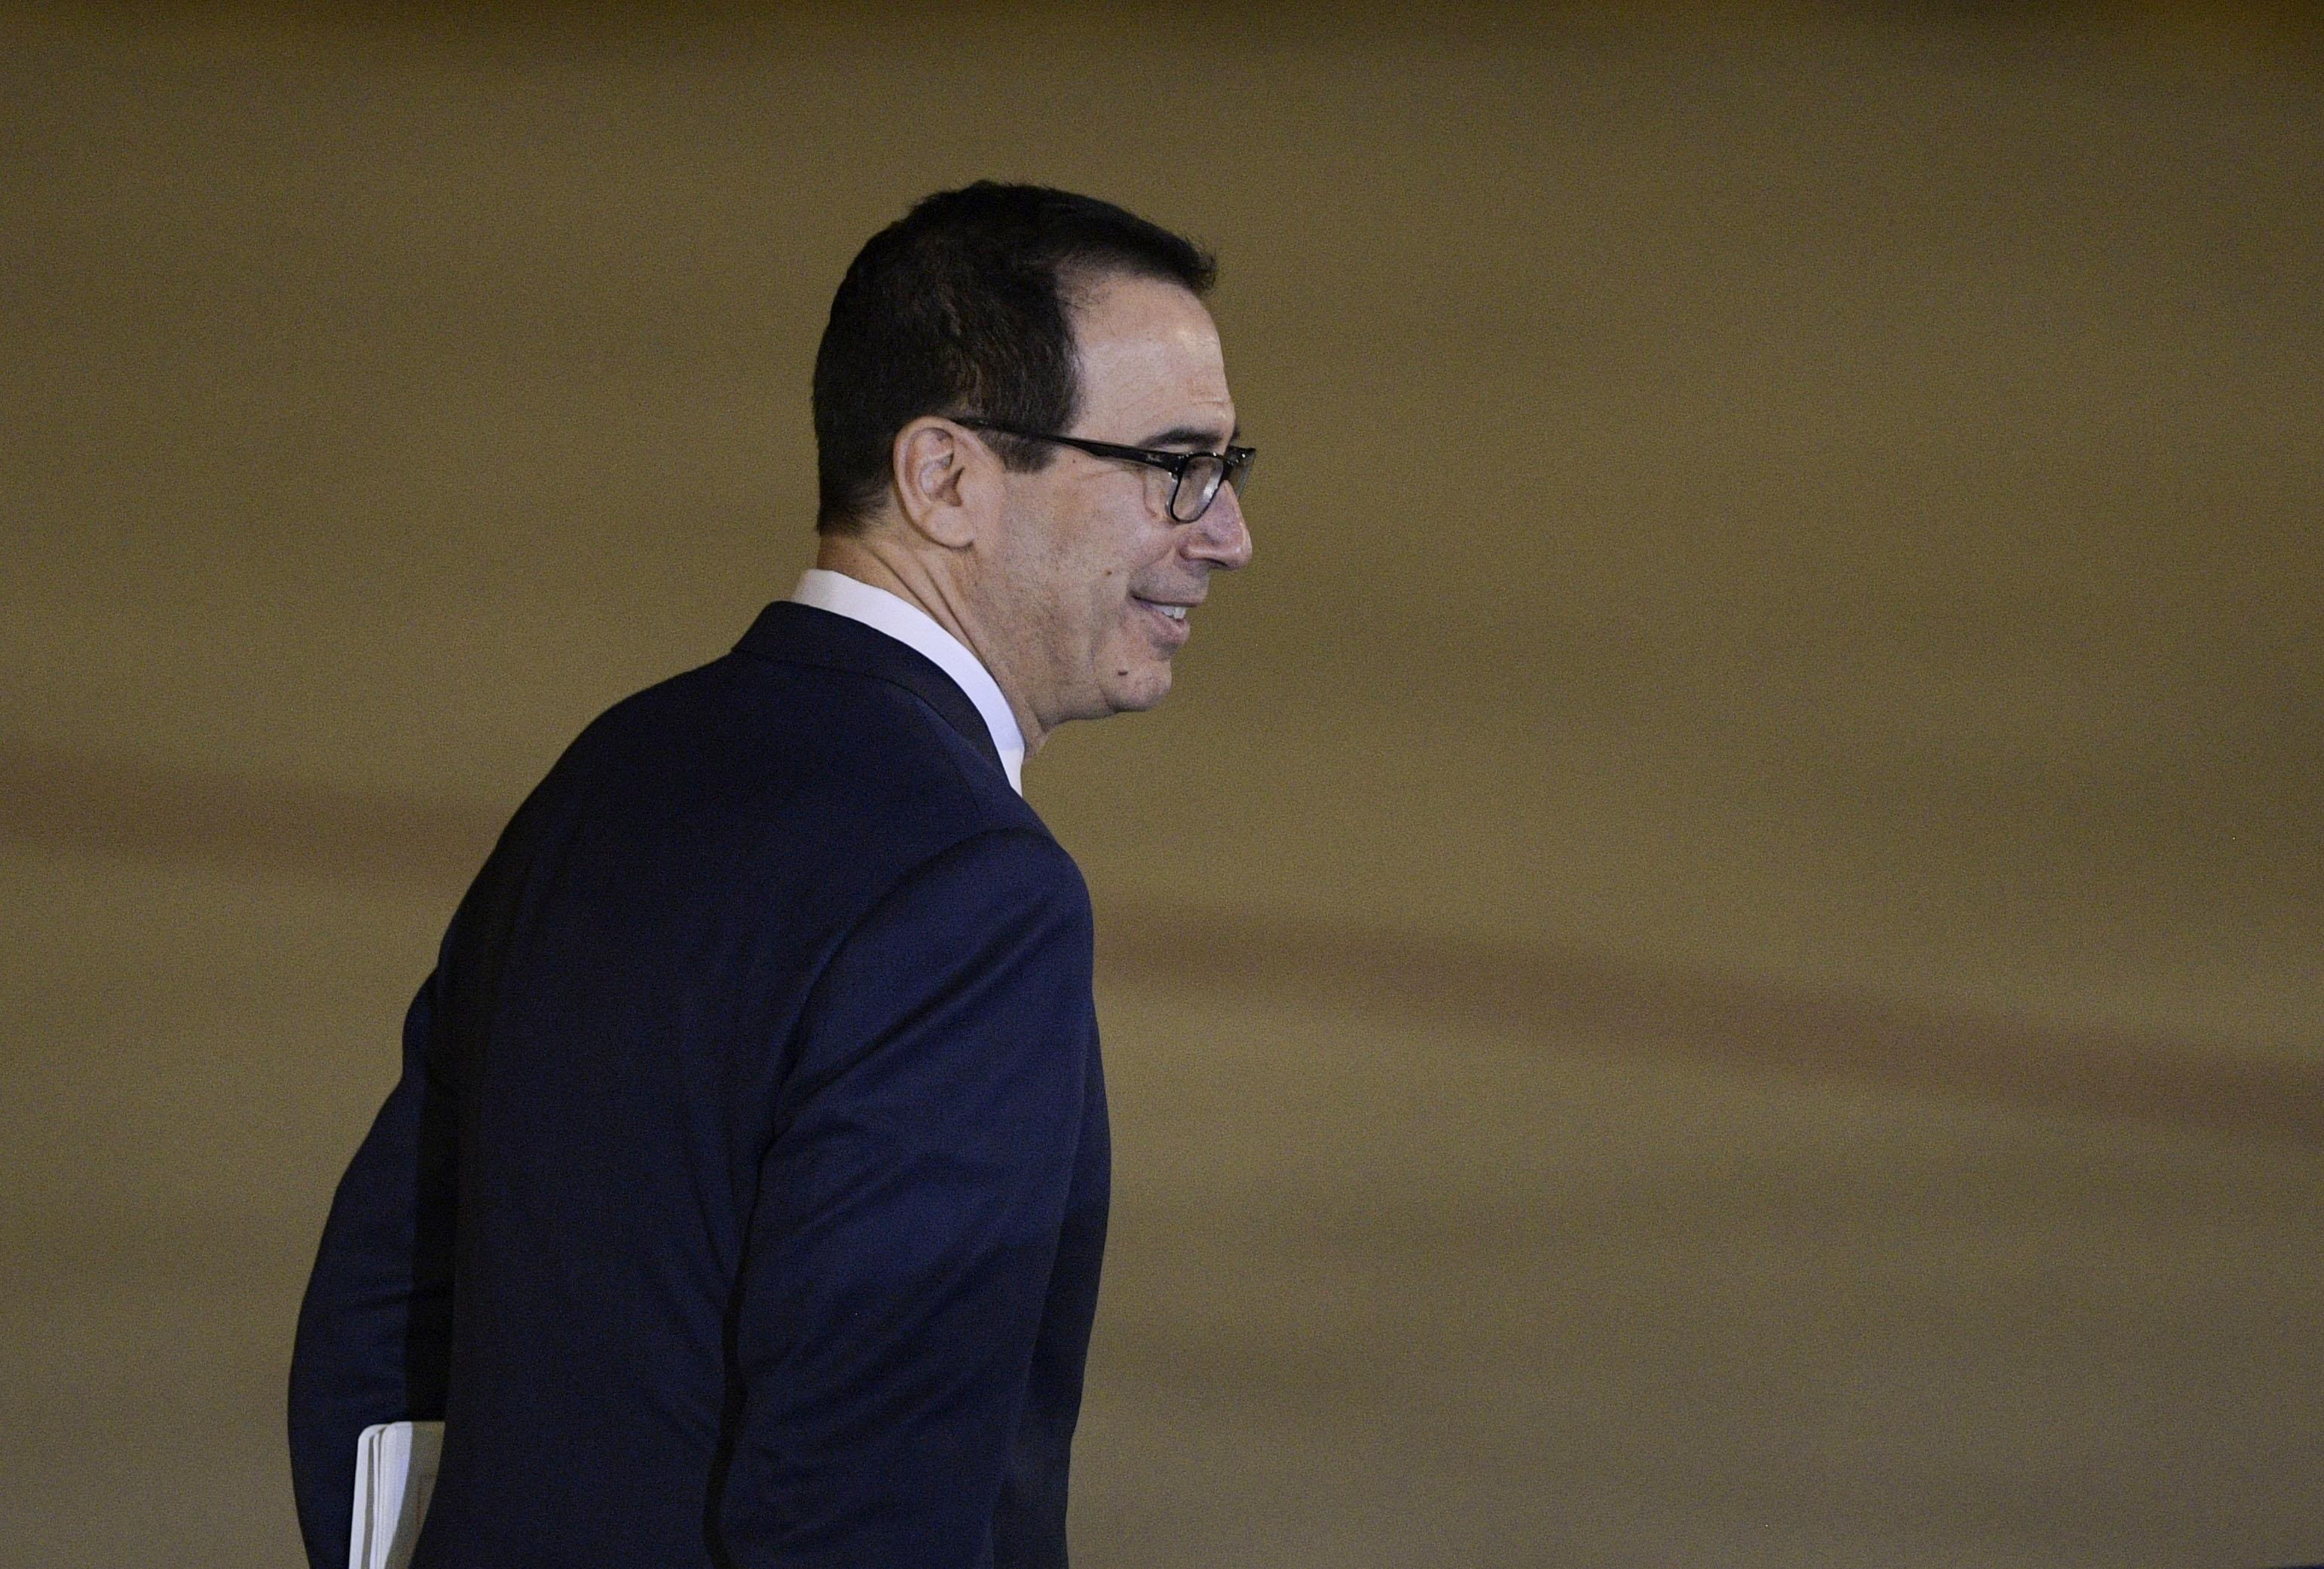 Secretary of the Treasury Steven Mnuchin is pictured shortly after his arrival at Ezeiza International airport in Buenos Aires province, on November 29, 2018, on the eve of the G20 Leaders' Summit.